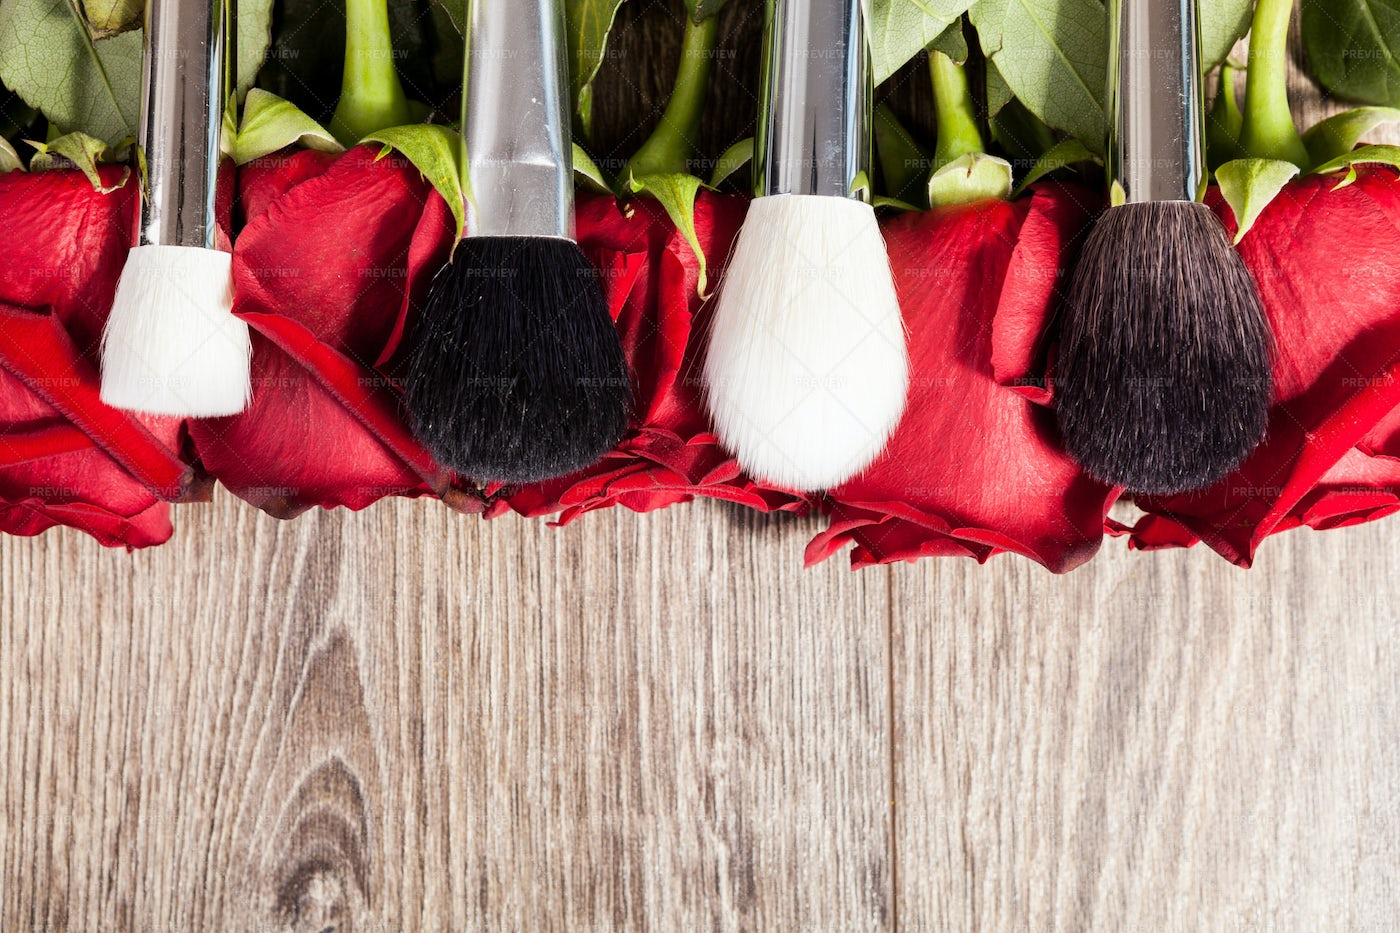 Make-up Brushes Over Roses: Stock Photos